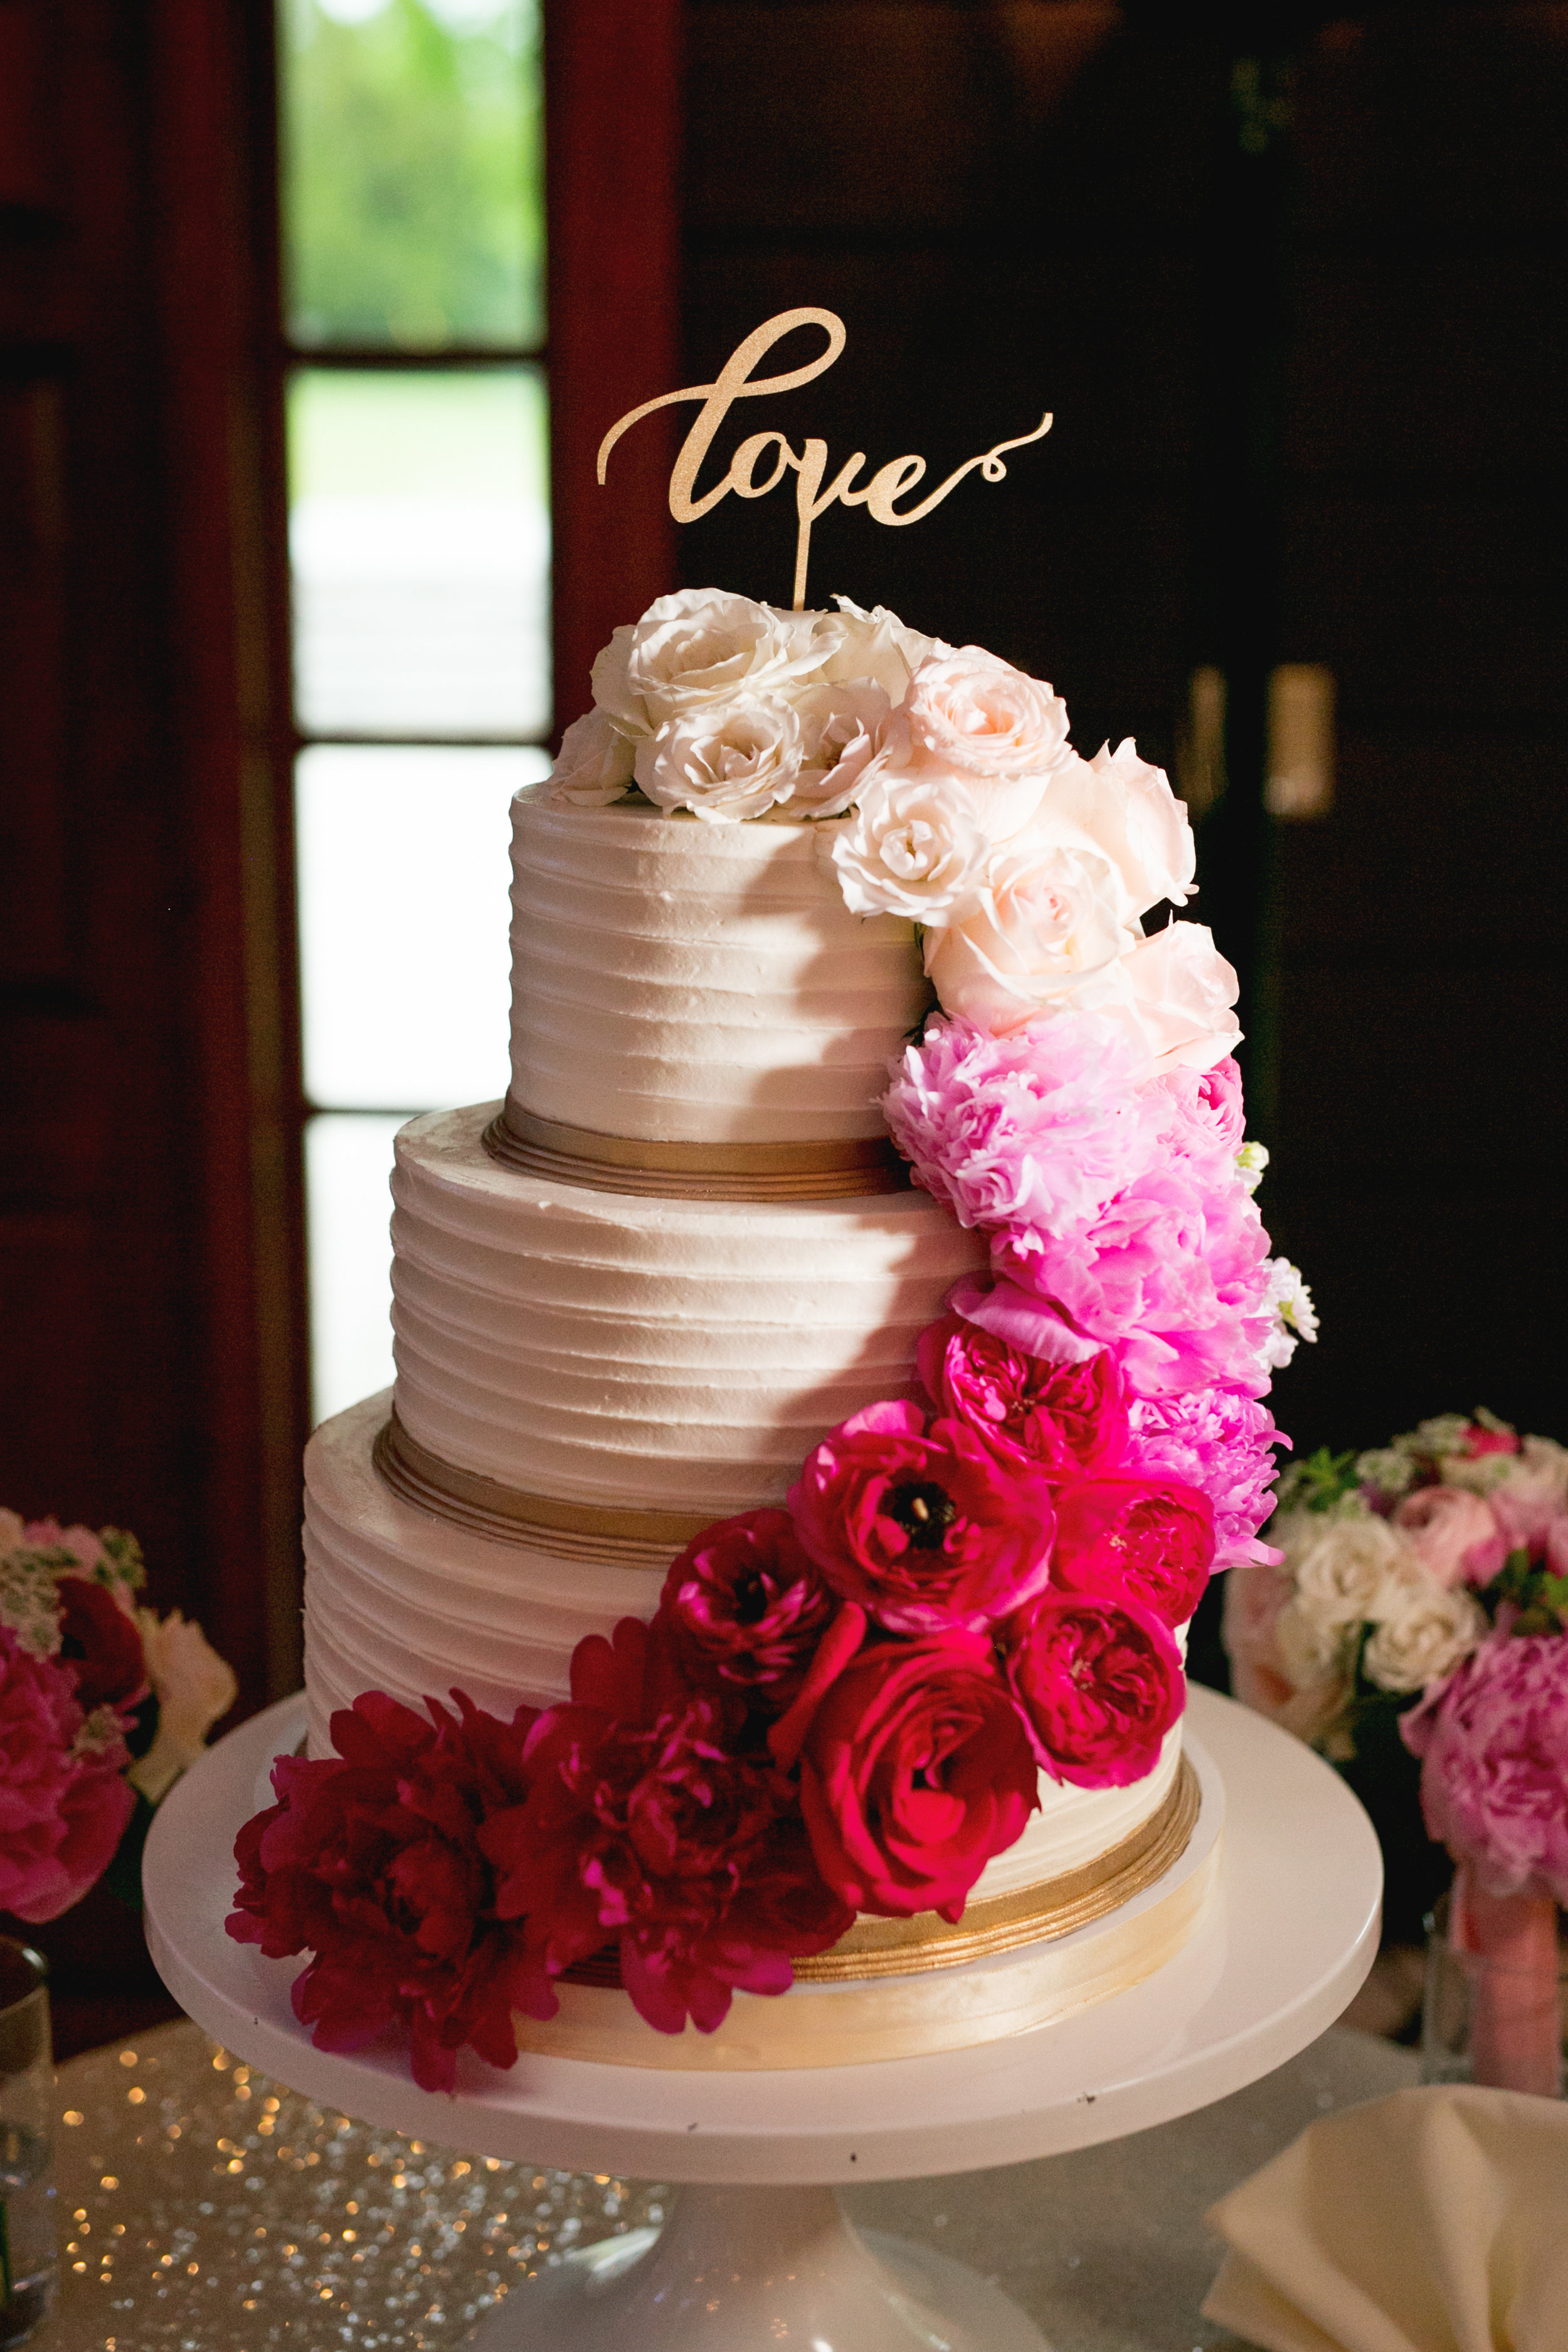 An ombre cascade of real flowers adorning the wedding cake was a showstopper!